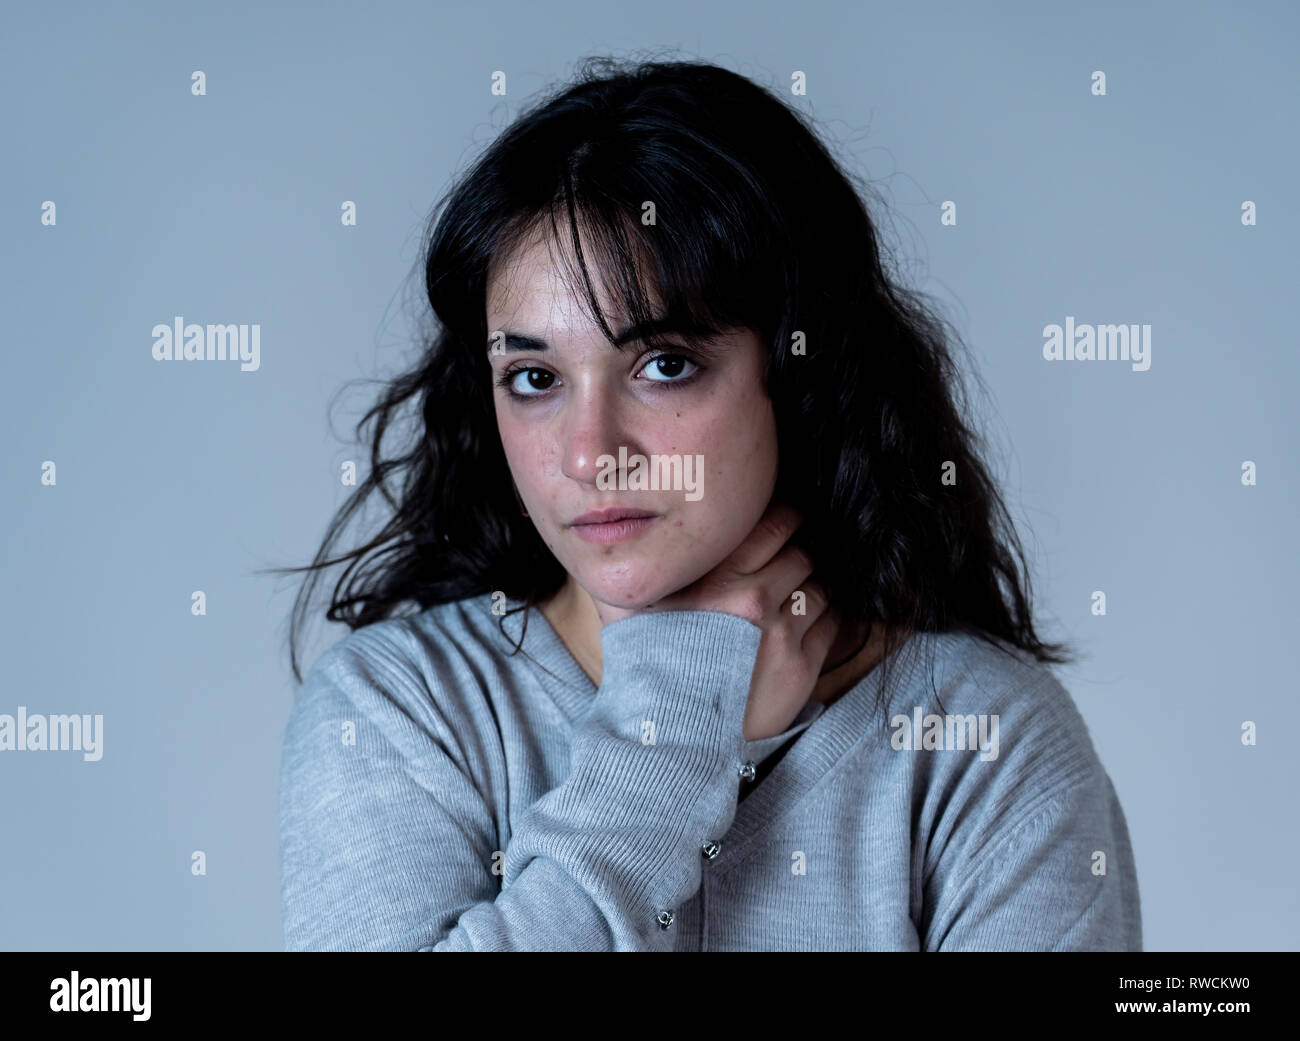 Close up portrait of beautiful young woman with sad eyes looking desperate and melancholy. Human facial expressions and emotions, depression and menta - Stock Image